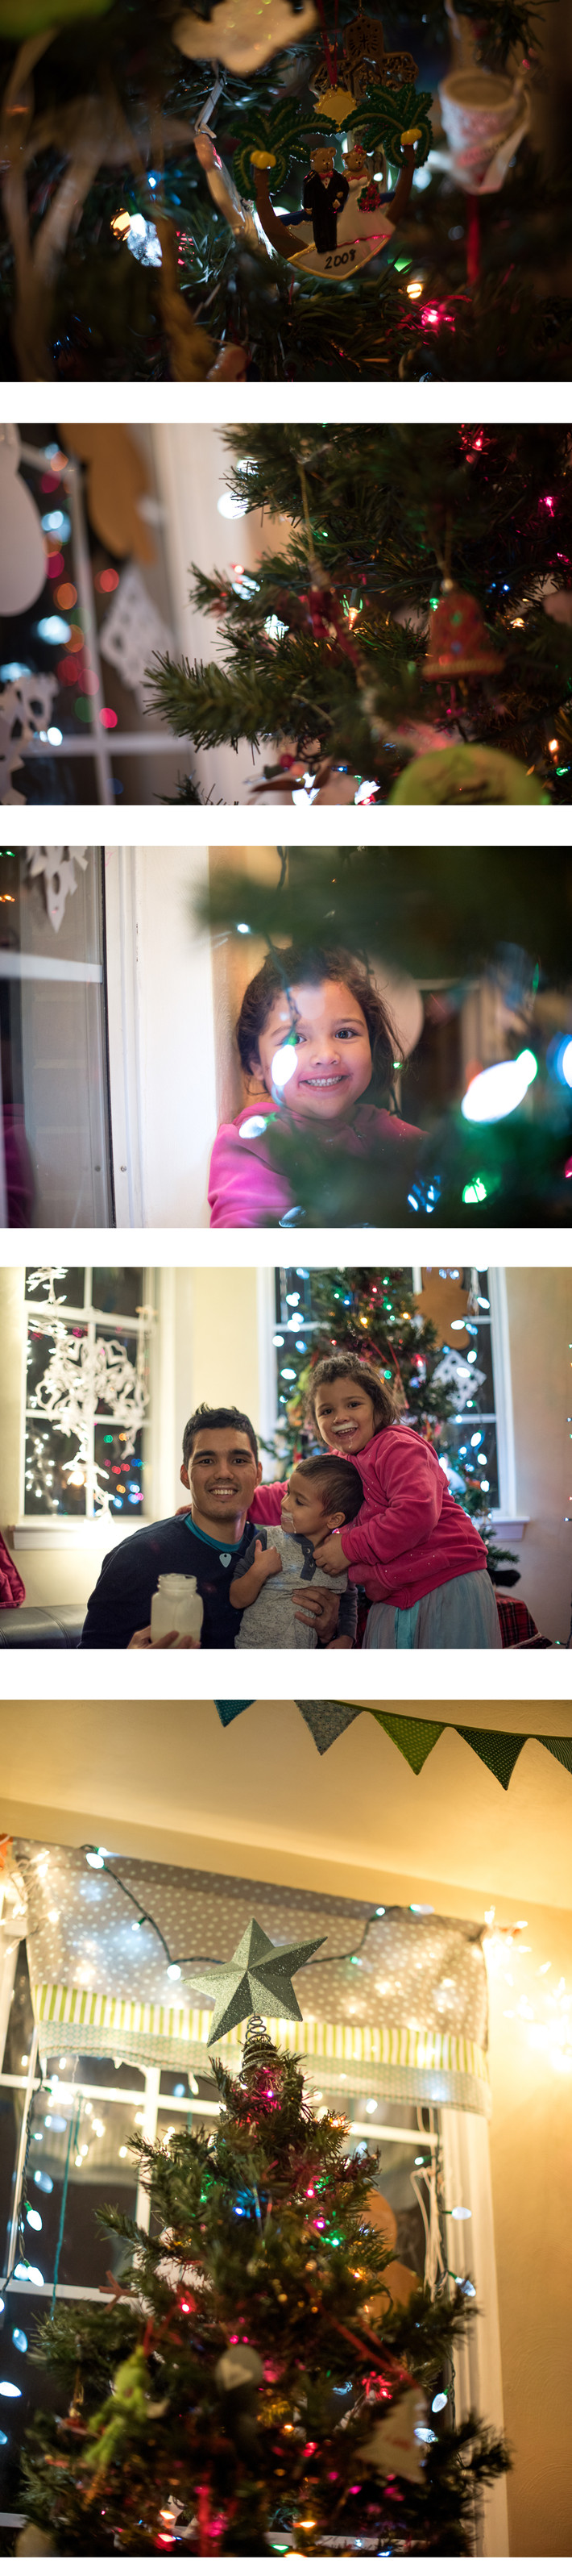 How to shoot great Christmas tree photos without flash!